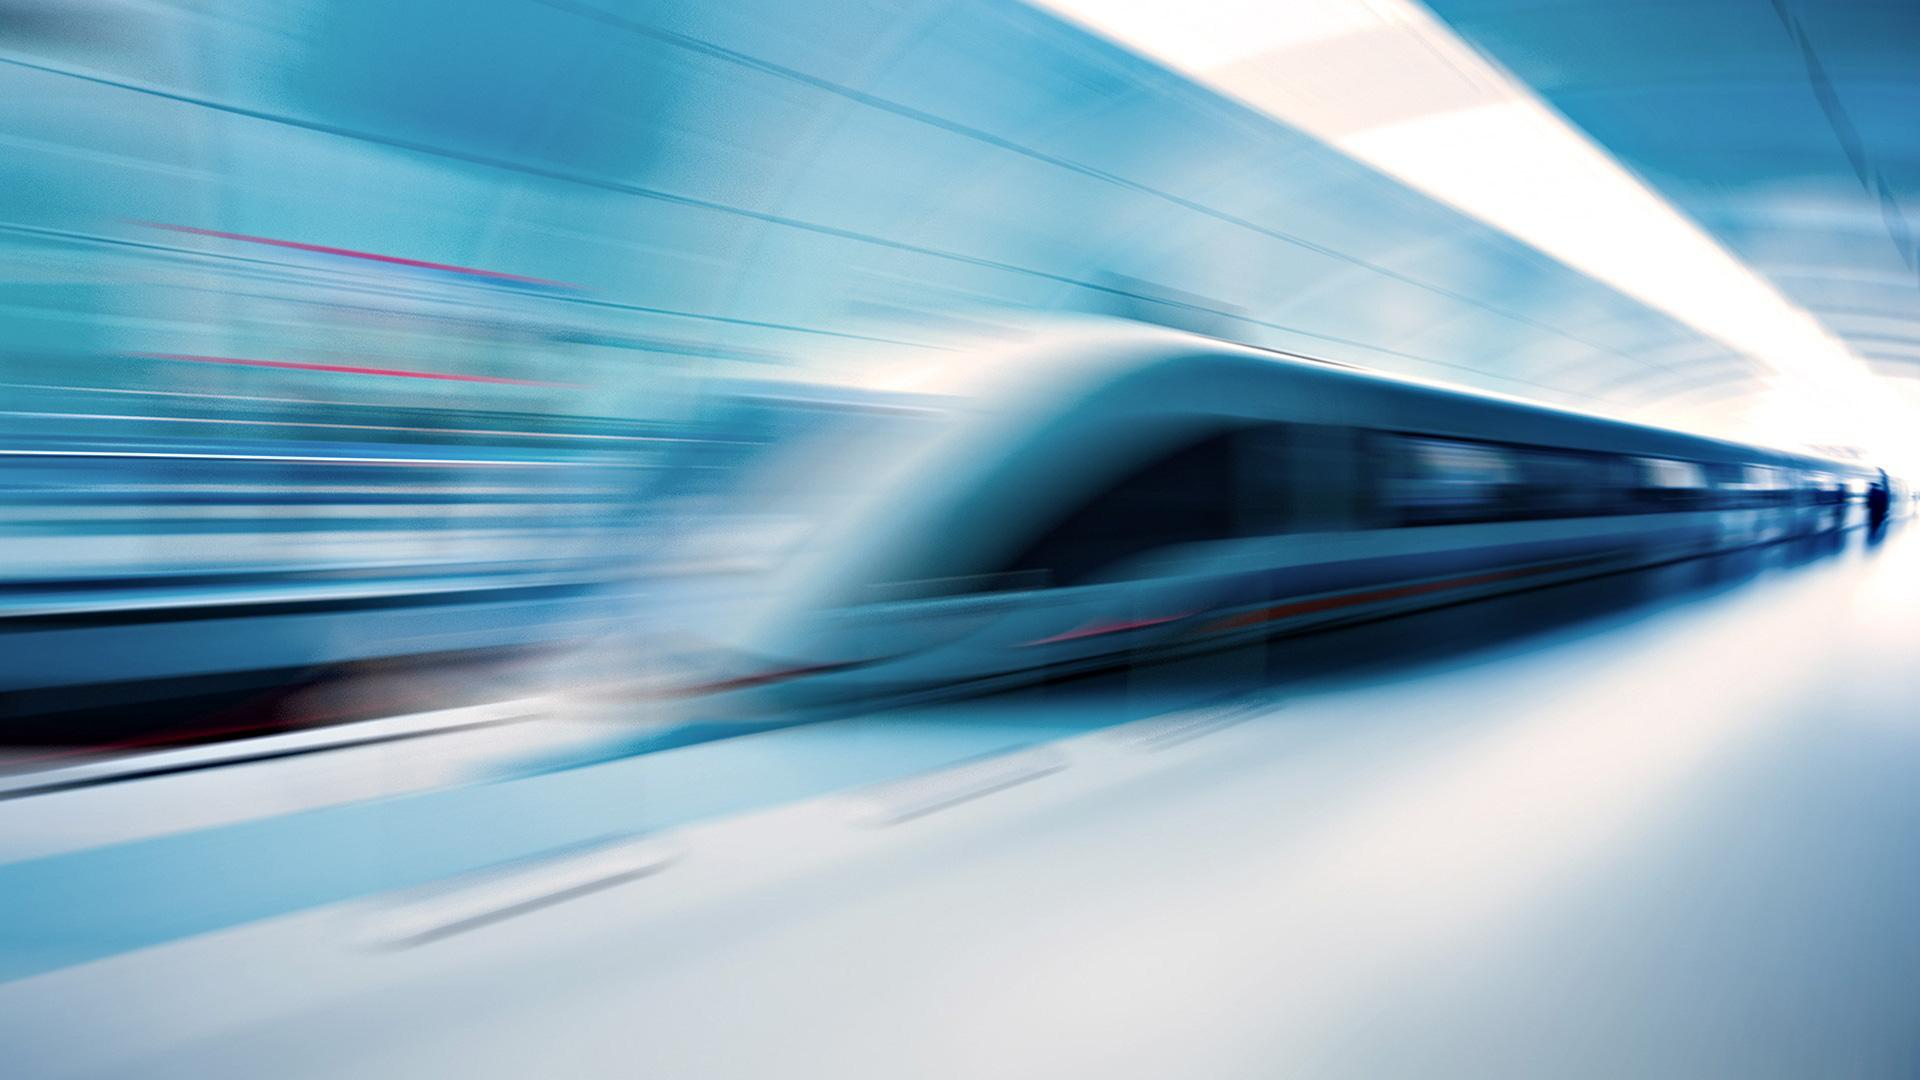 Download Train Speed Blur wallpaper